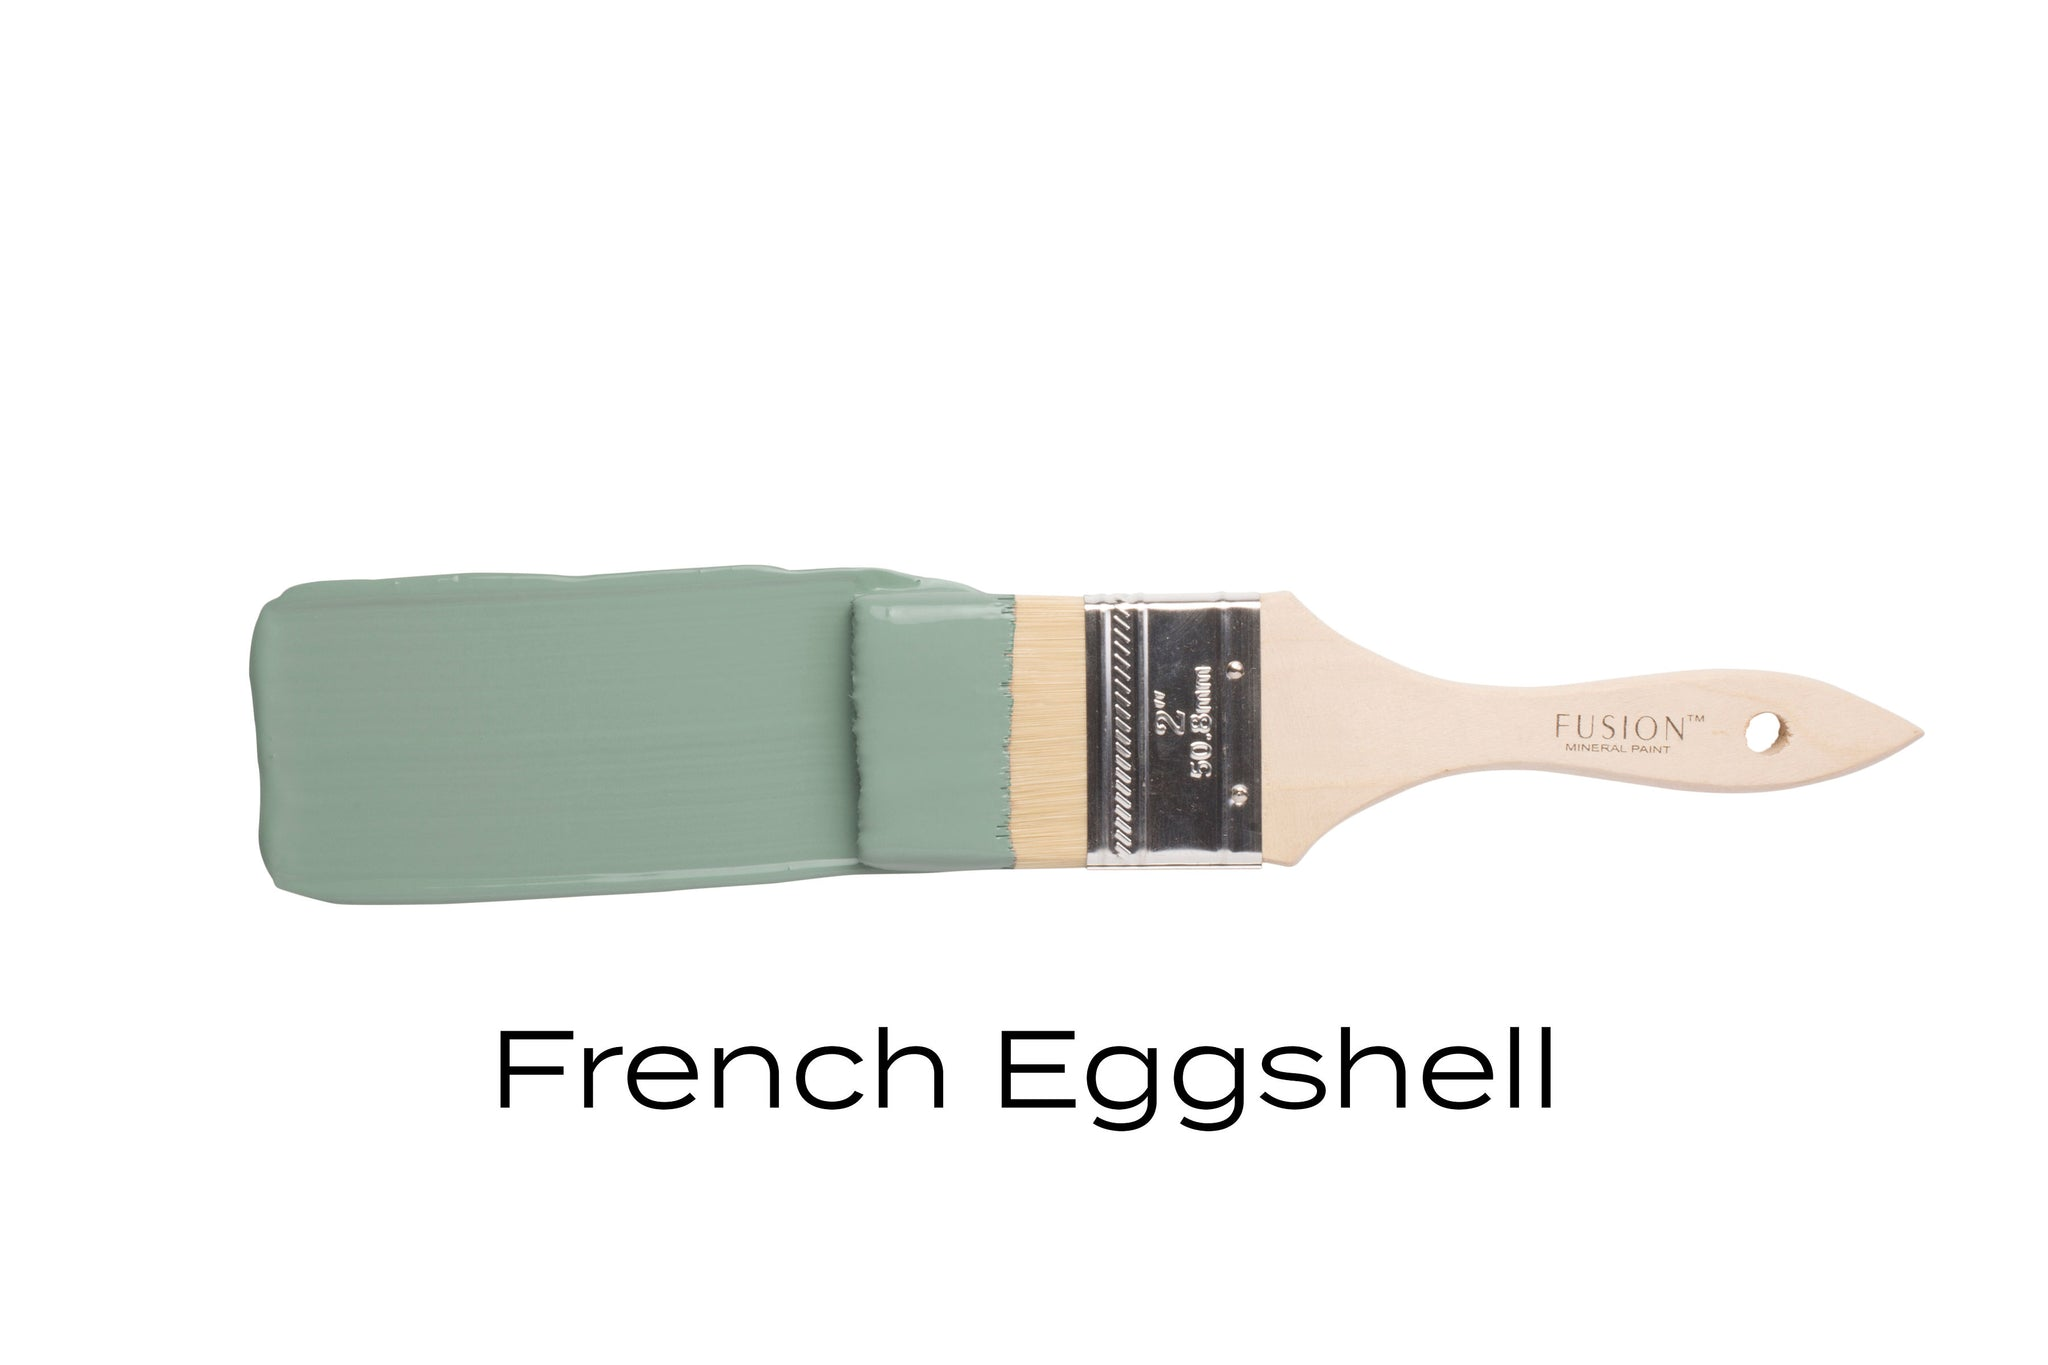 French Eggshell